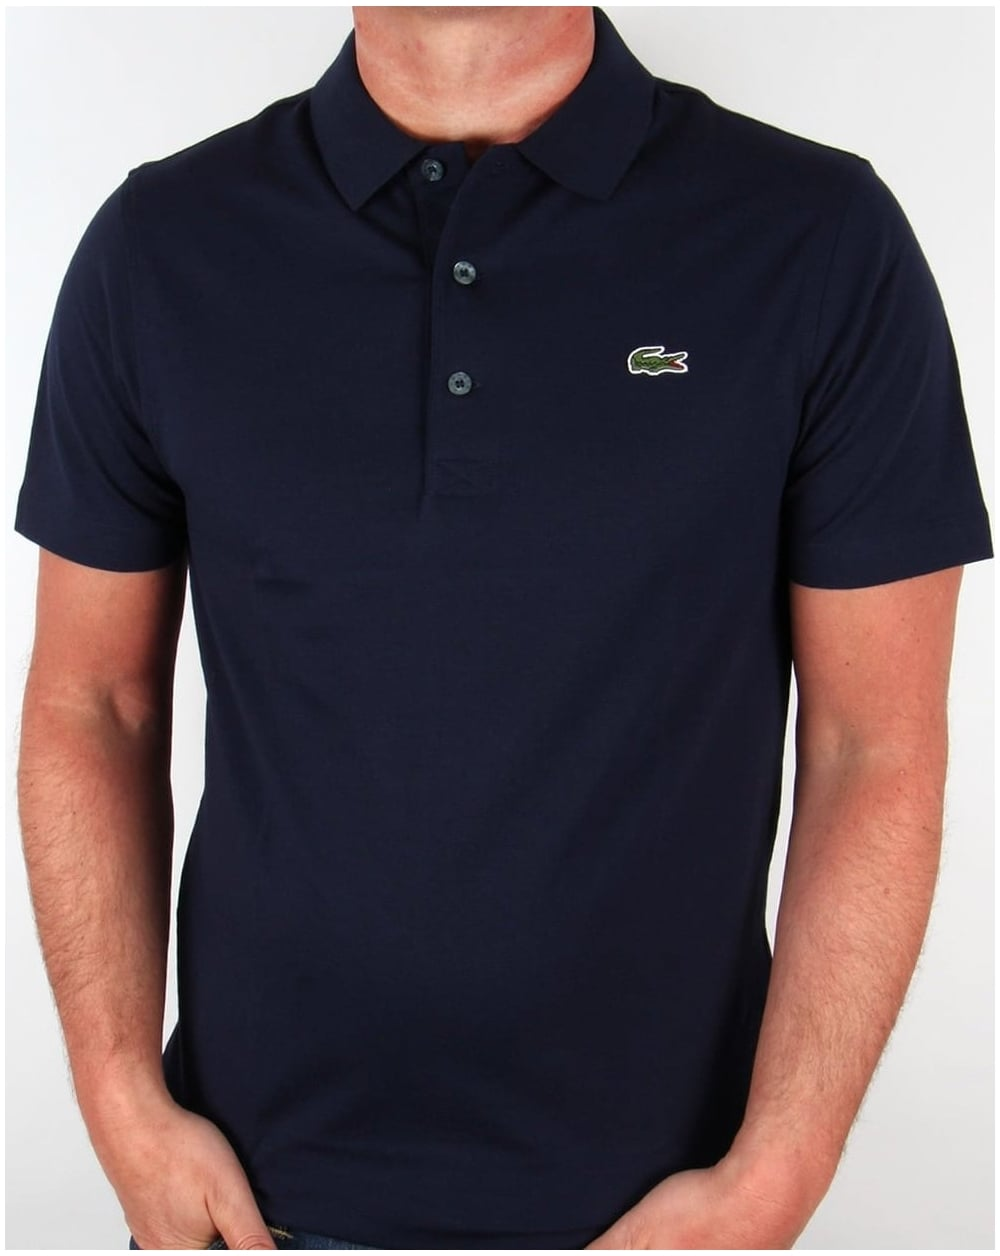 lacoste-polo-shirt-navy-p4372-56848_imag